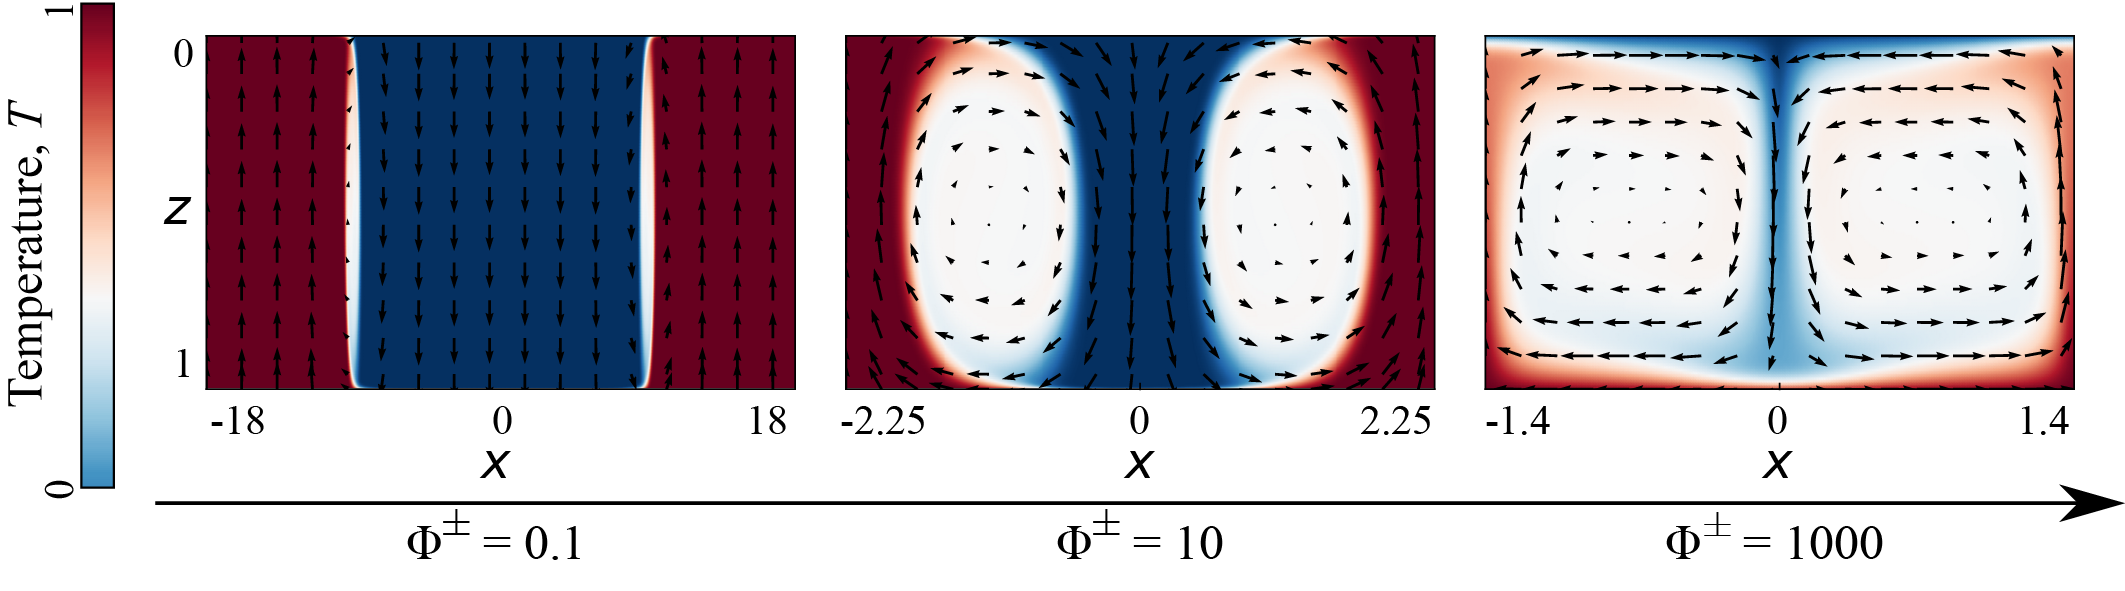 Convection patterns with magma oceans above and below, as function of the phase change number